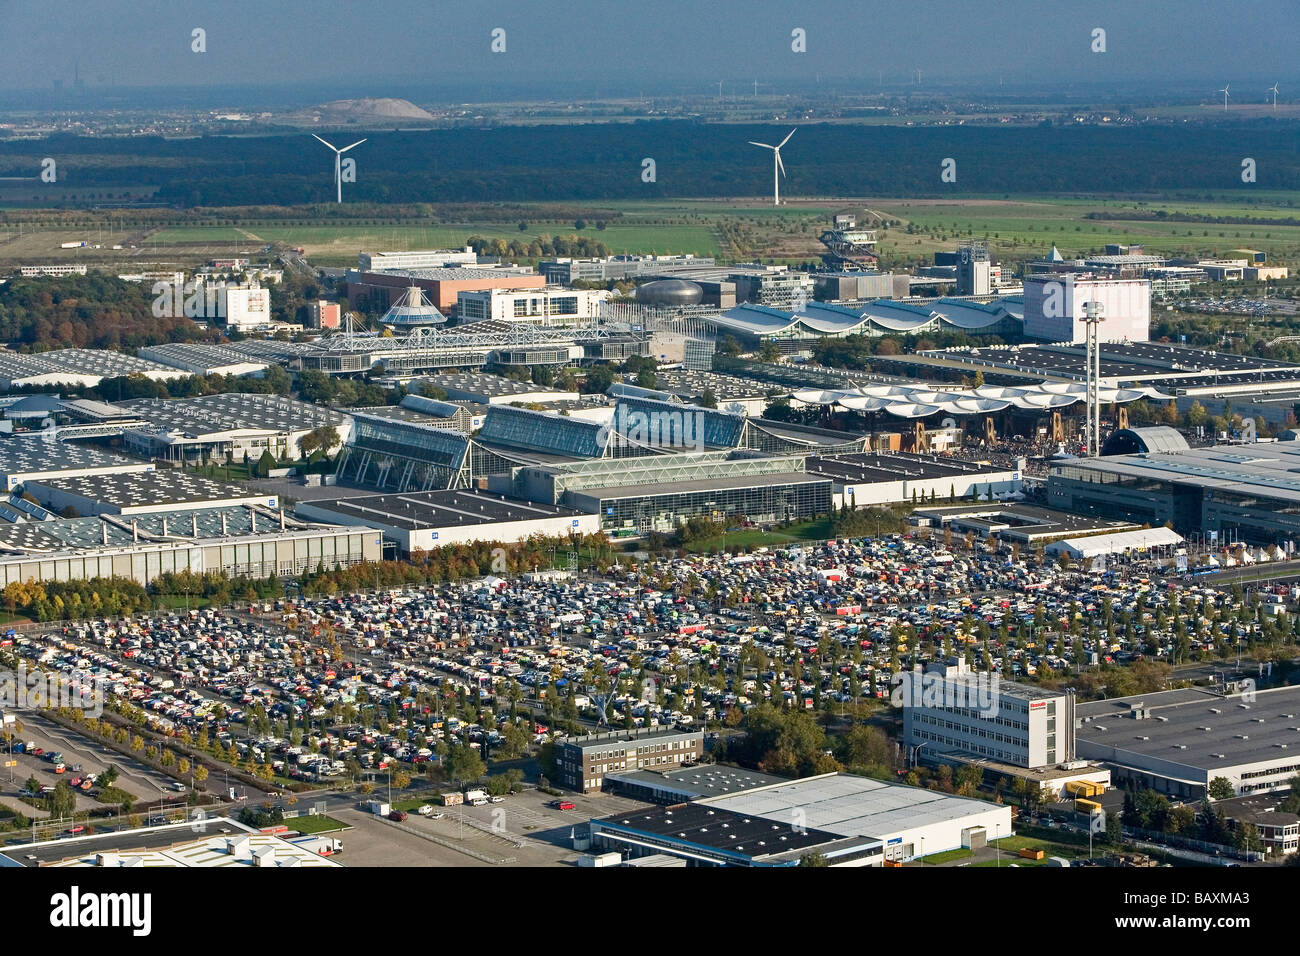 aerial view of thousands of VW vans, at the 60 years of the VW bus on the trade fair grounds in Hanover Laatzen - Stock Image